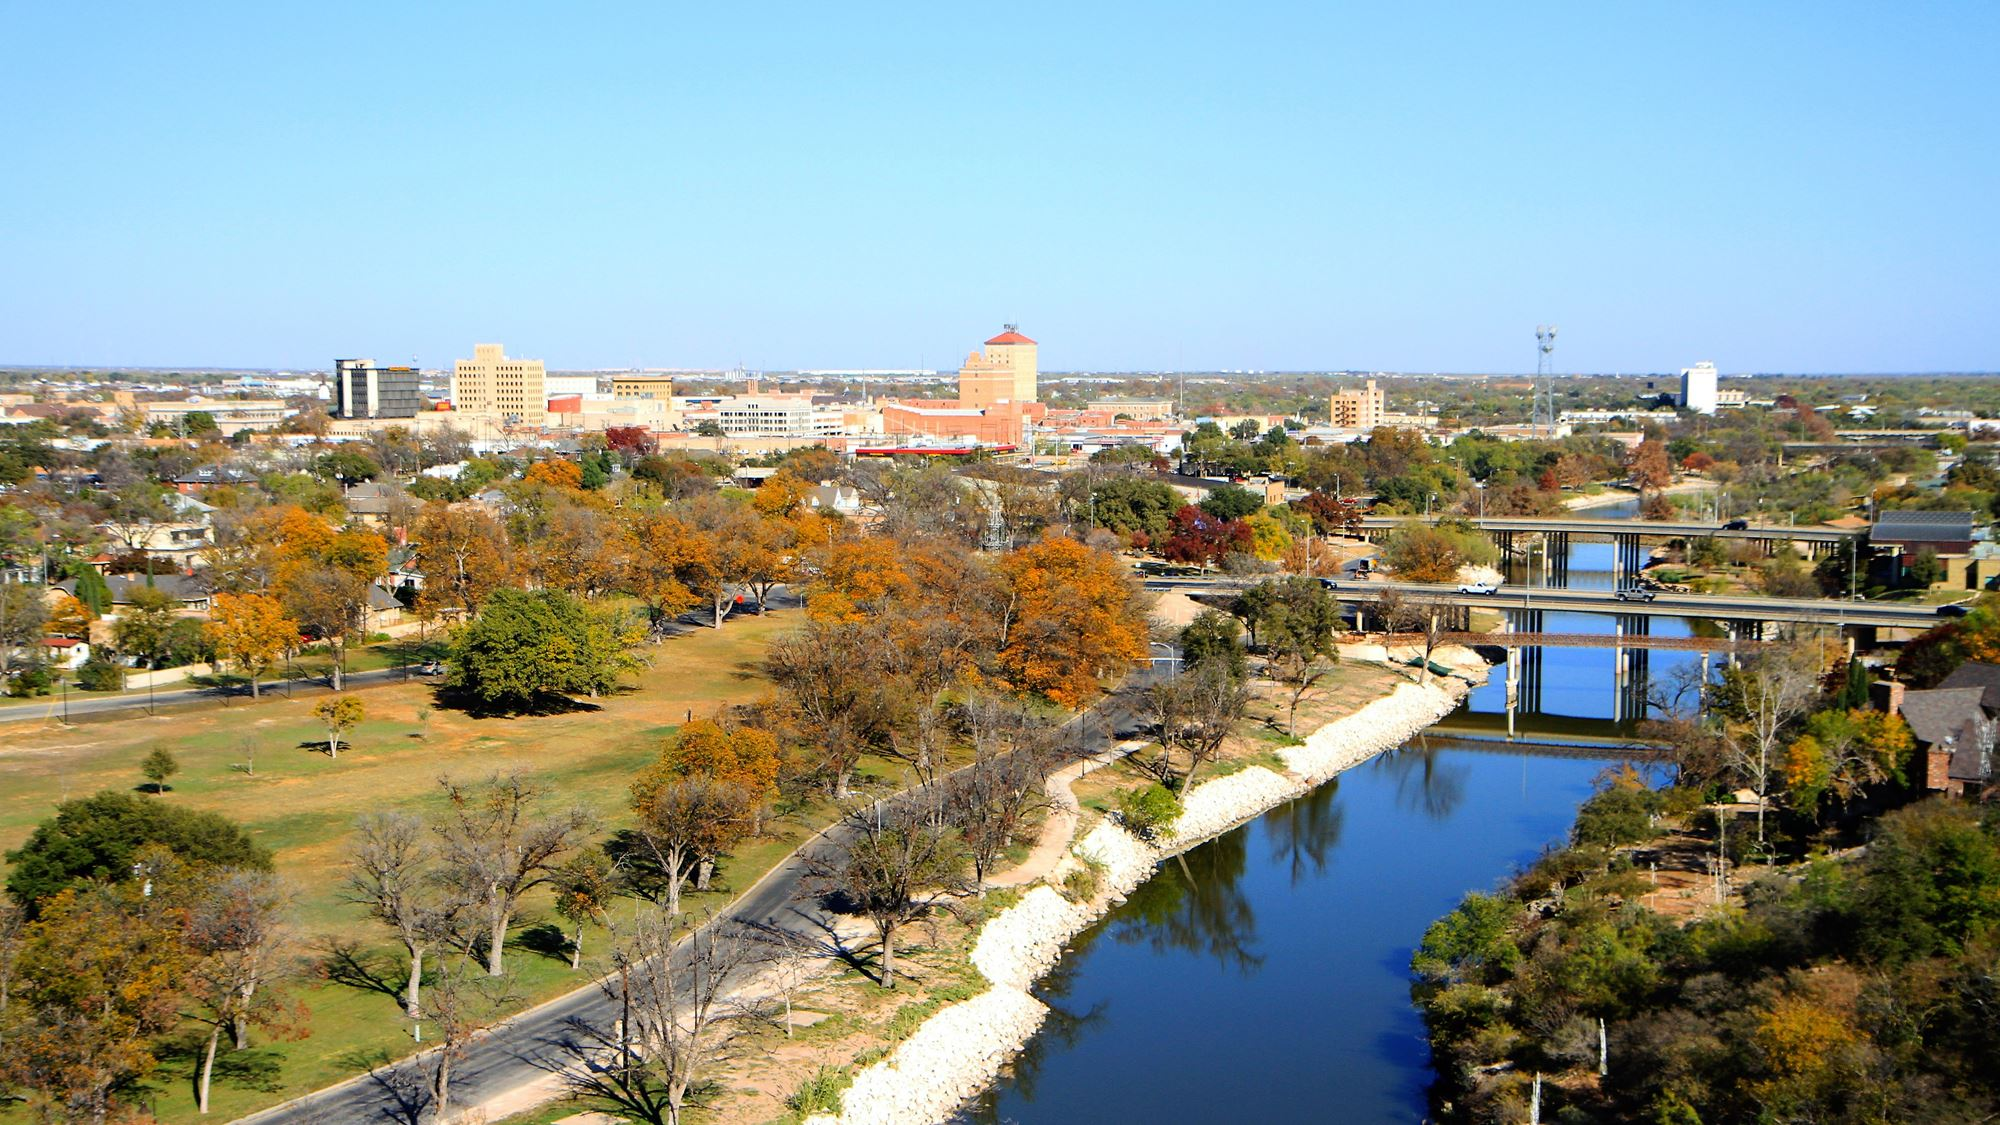 Plan a Road Trip to San Angelo, Texas